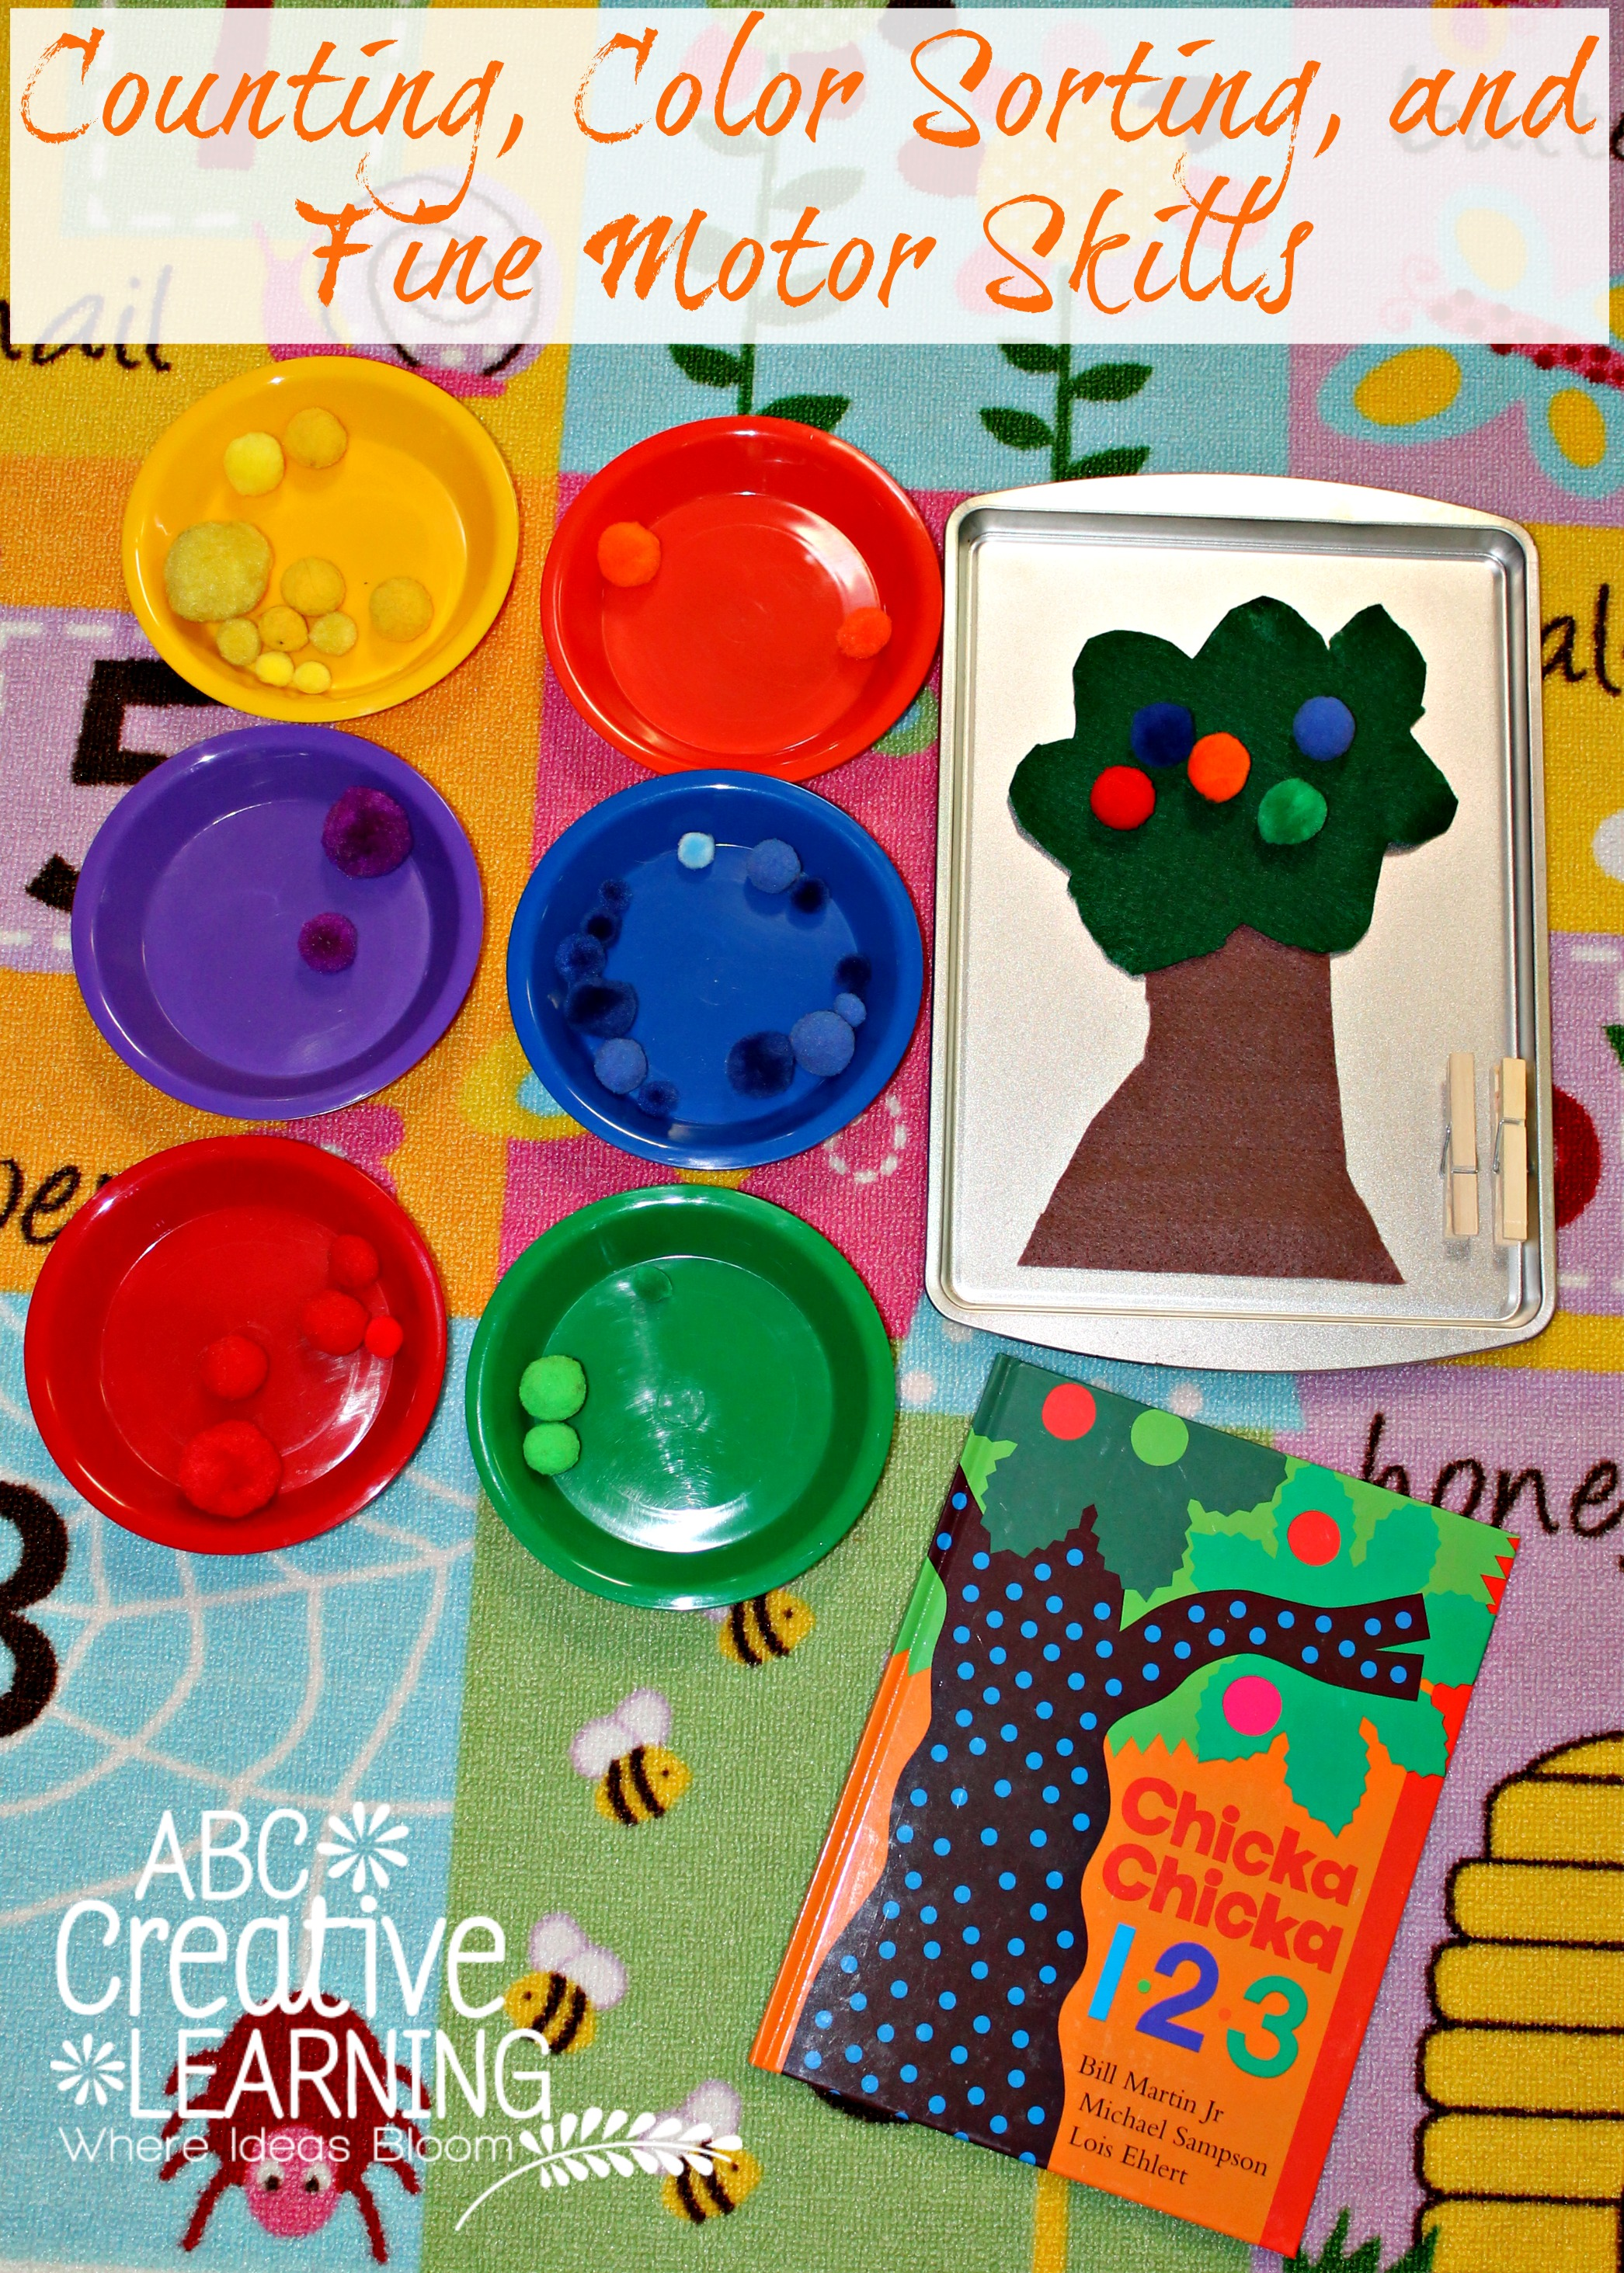 Chicka Chicka 123 Counting Color Sorting And Some Fine Motor Skills